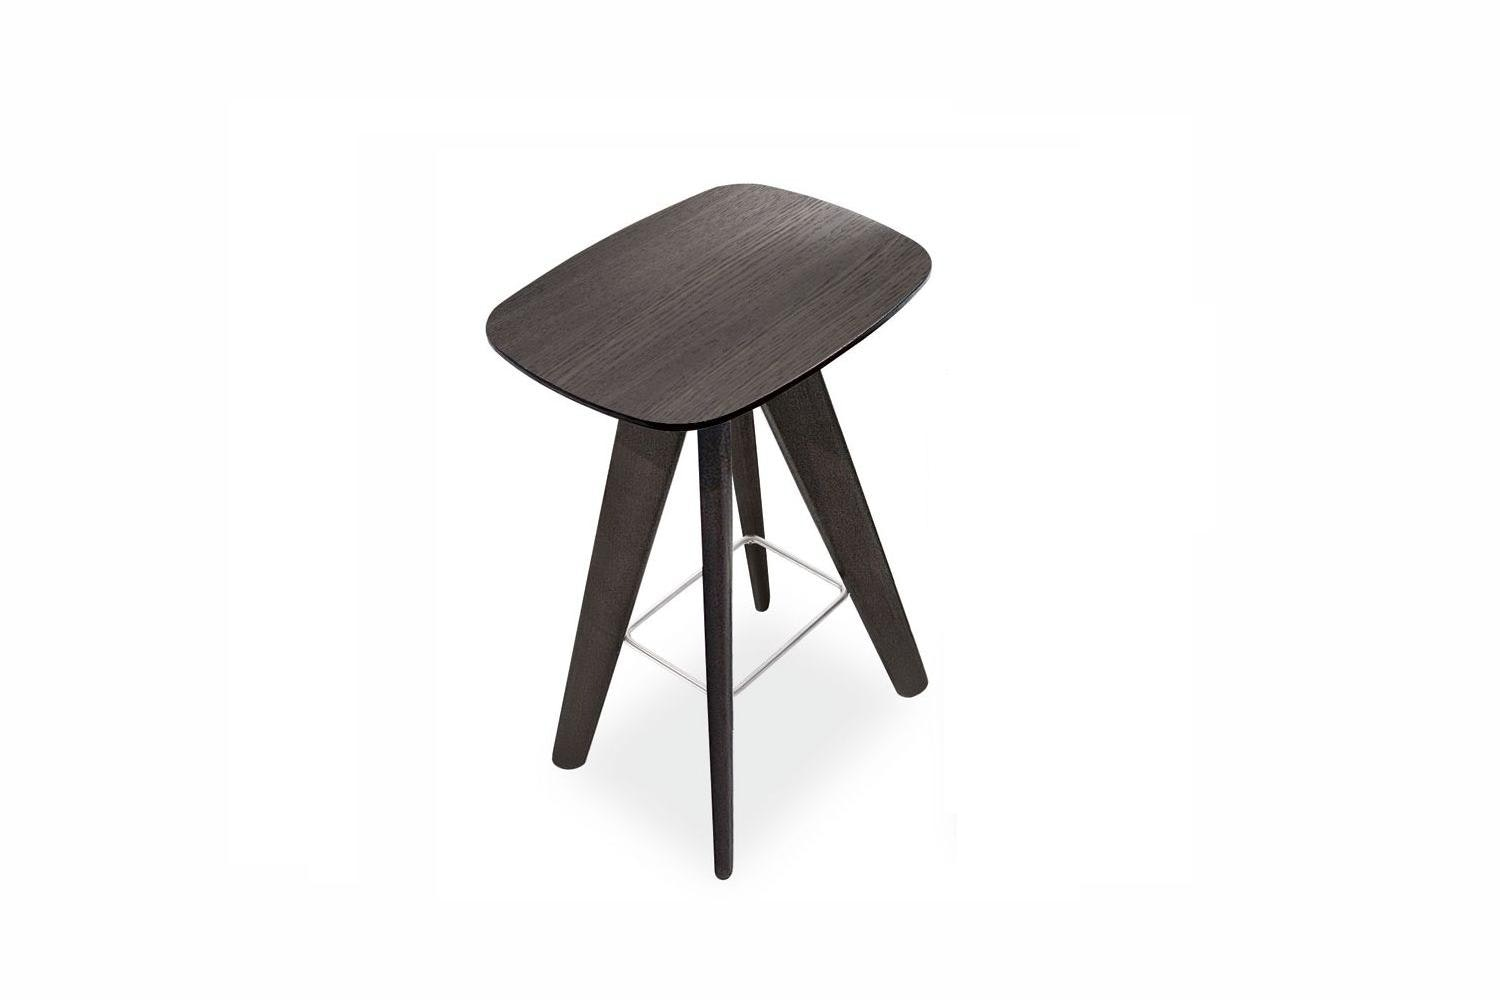 Ics Stool by Rodrigo Torres for Poliform